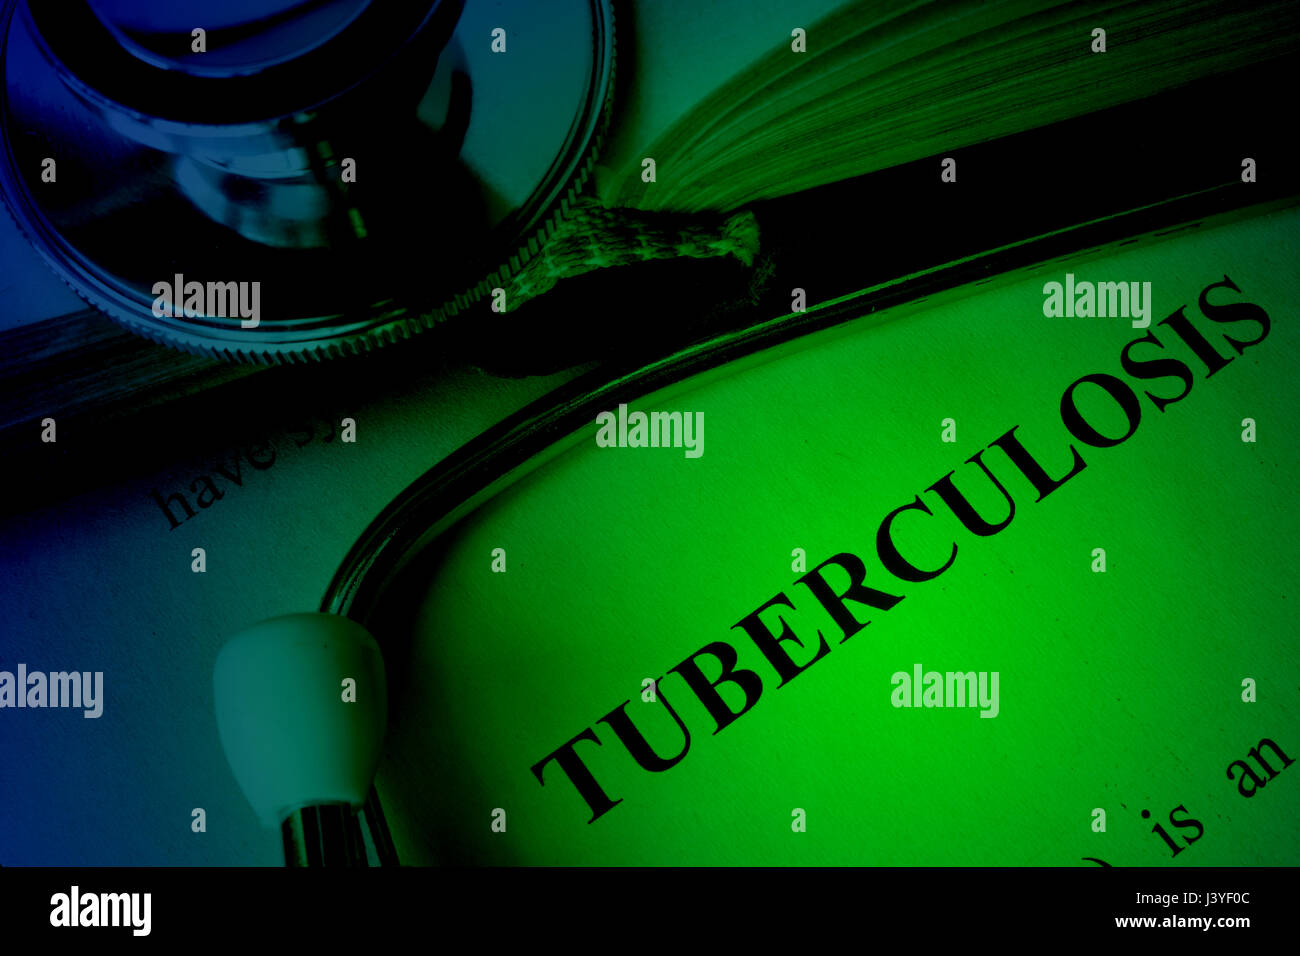 Document with diagnosis tuberculosis. Lung disease concept. - Stock Image